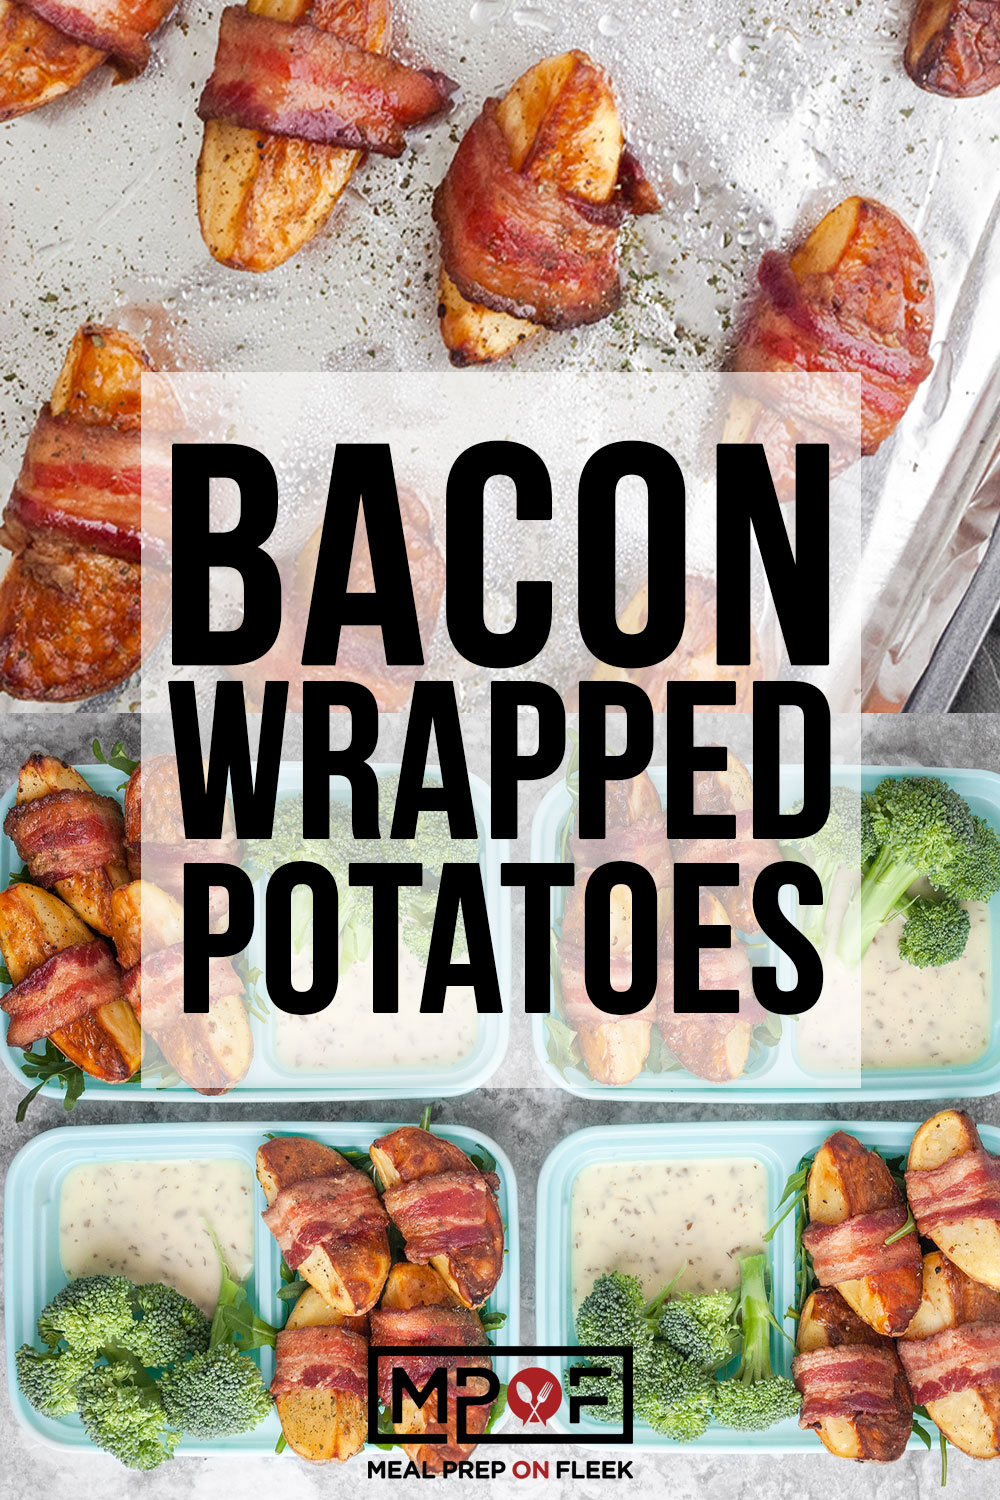 bacon-wrapped-potatoes